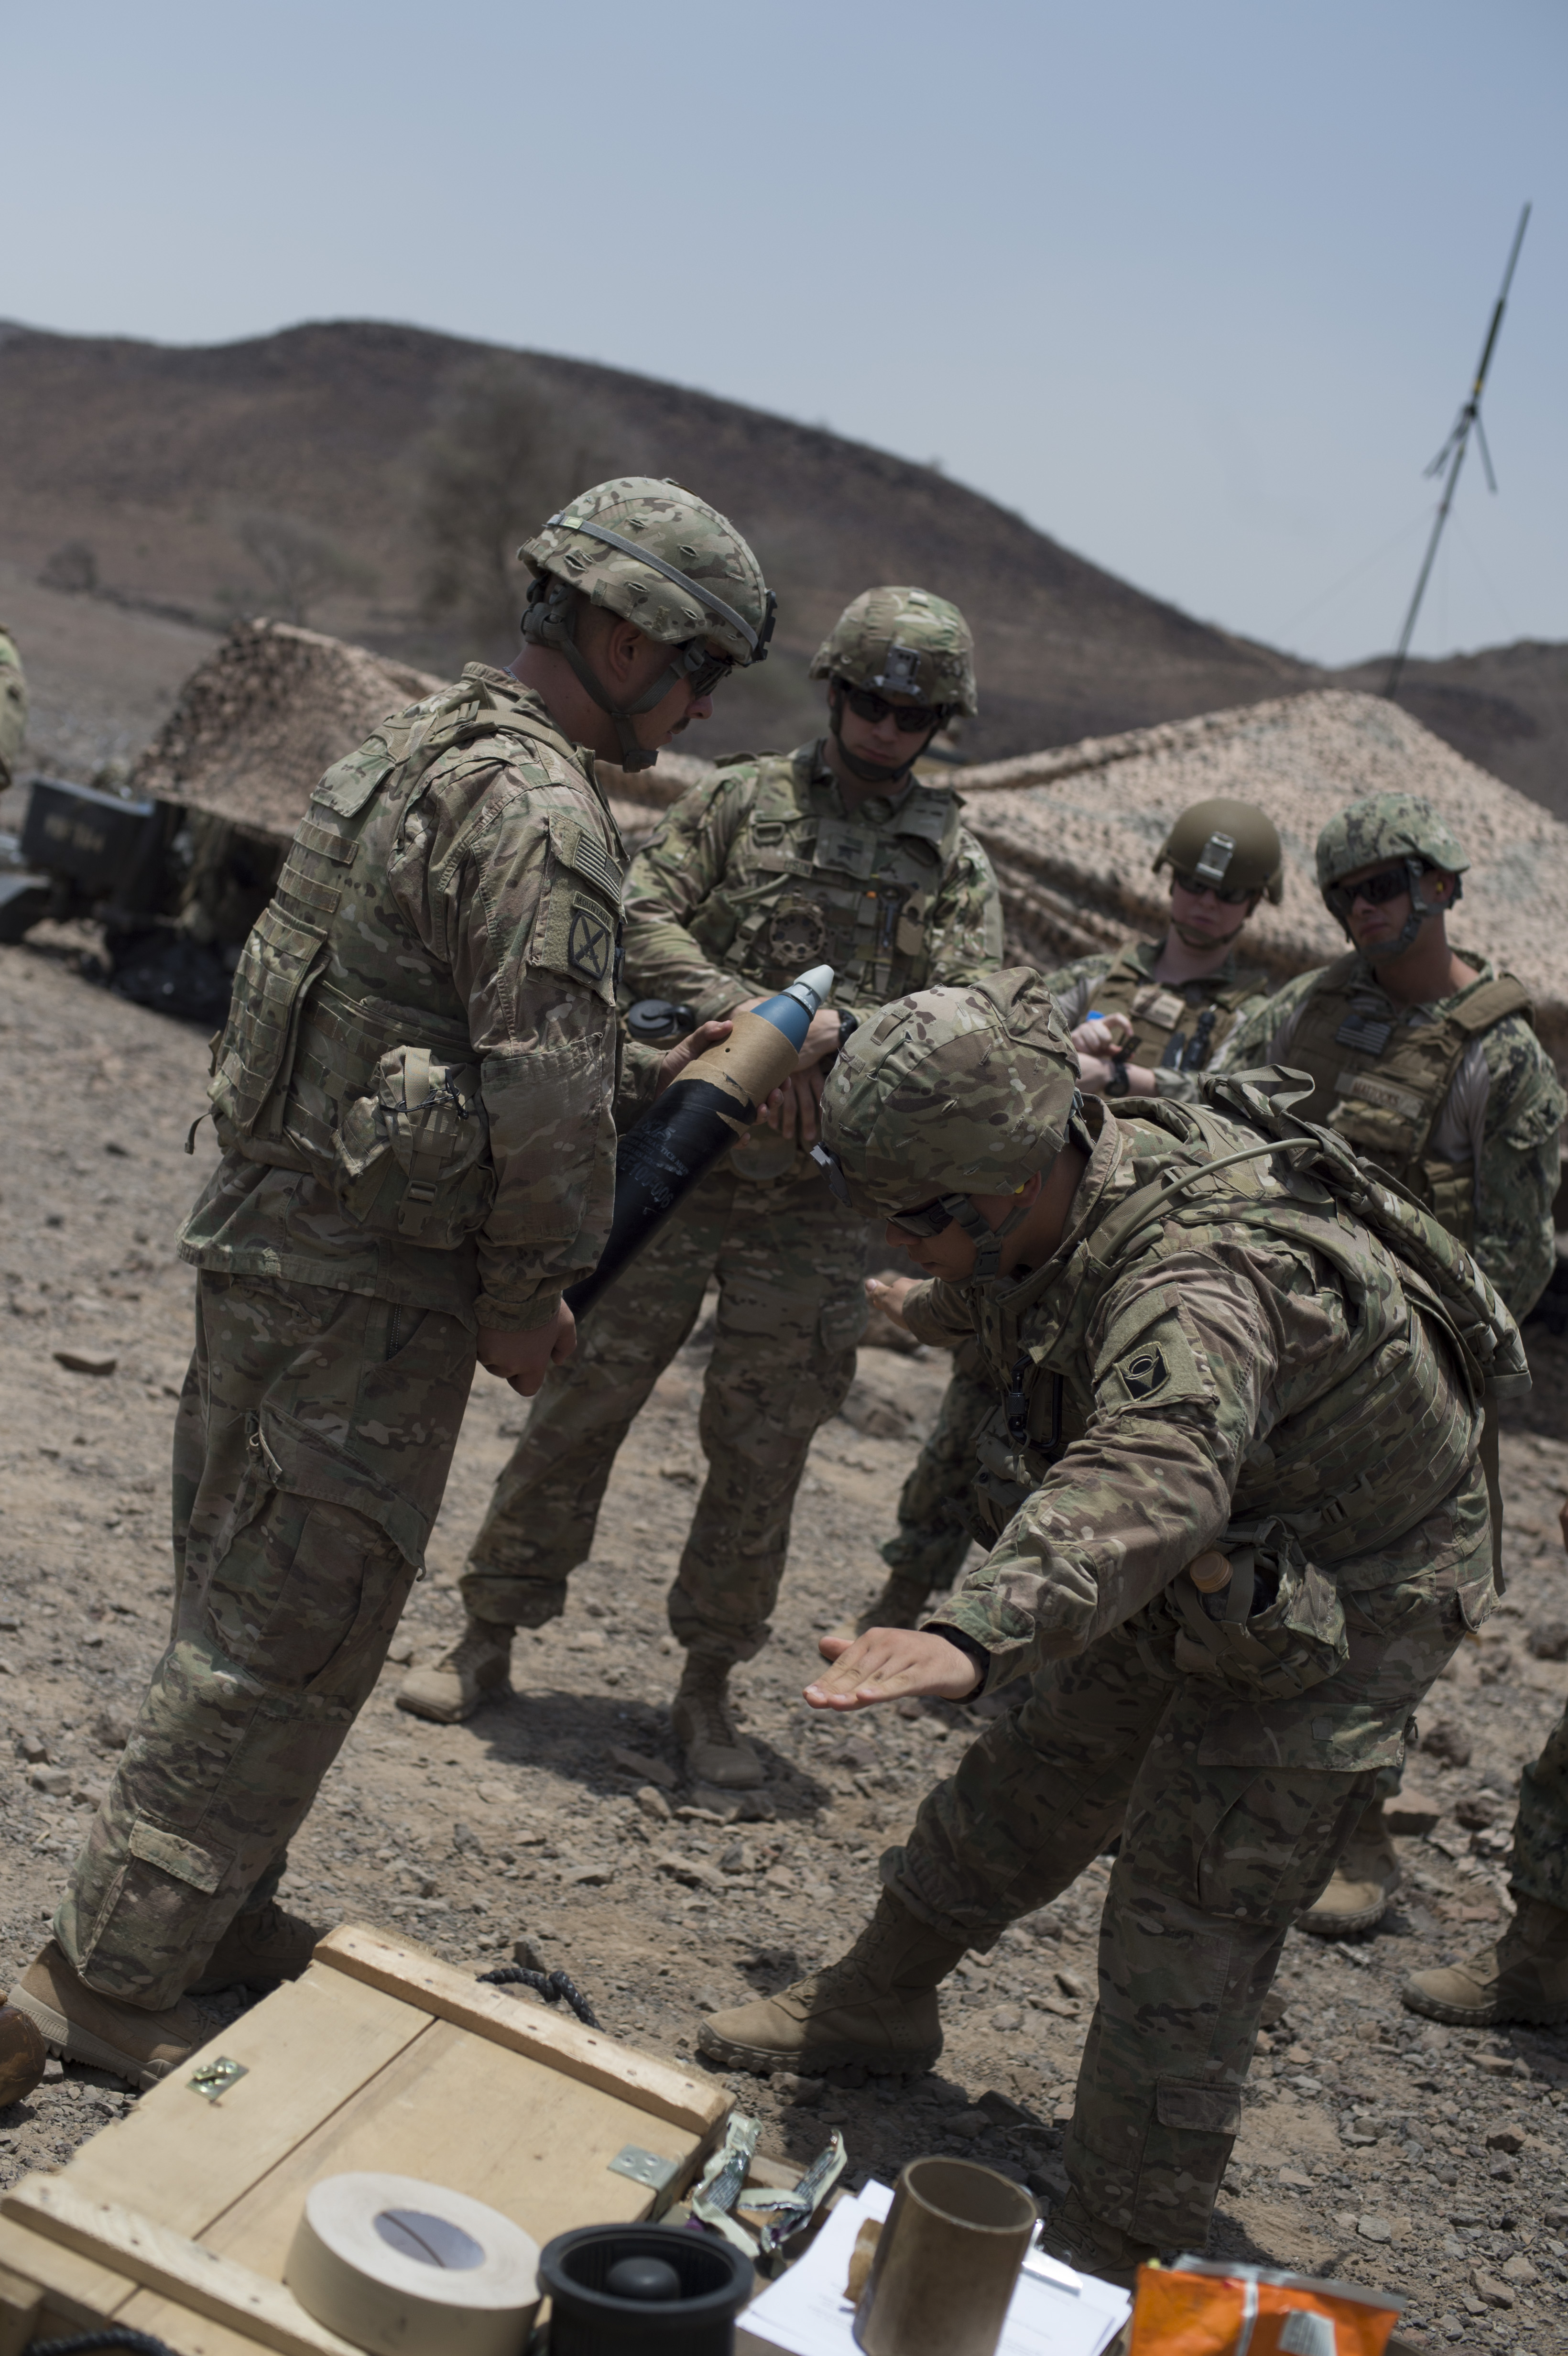 U.S. Army Soldiers from the 1st Battalion, 124th Infantry Regiment, Bravo Company demonstrate procedures for firing a mortar Aug. 8, 2016, at Arta, Djibouti. The training was conducted to ensure the unit remained proficient in using mortar artillery.  The 1-124 is a guard unit deployed from Cocoa, Fla., to Combined Joint Task Force-Horn of Africa. (U.S. Air Force Air Force photo by Staff Sgt. Eric Summers Jr./Released)